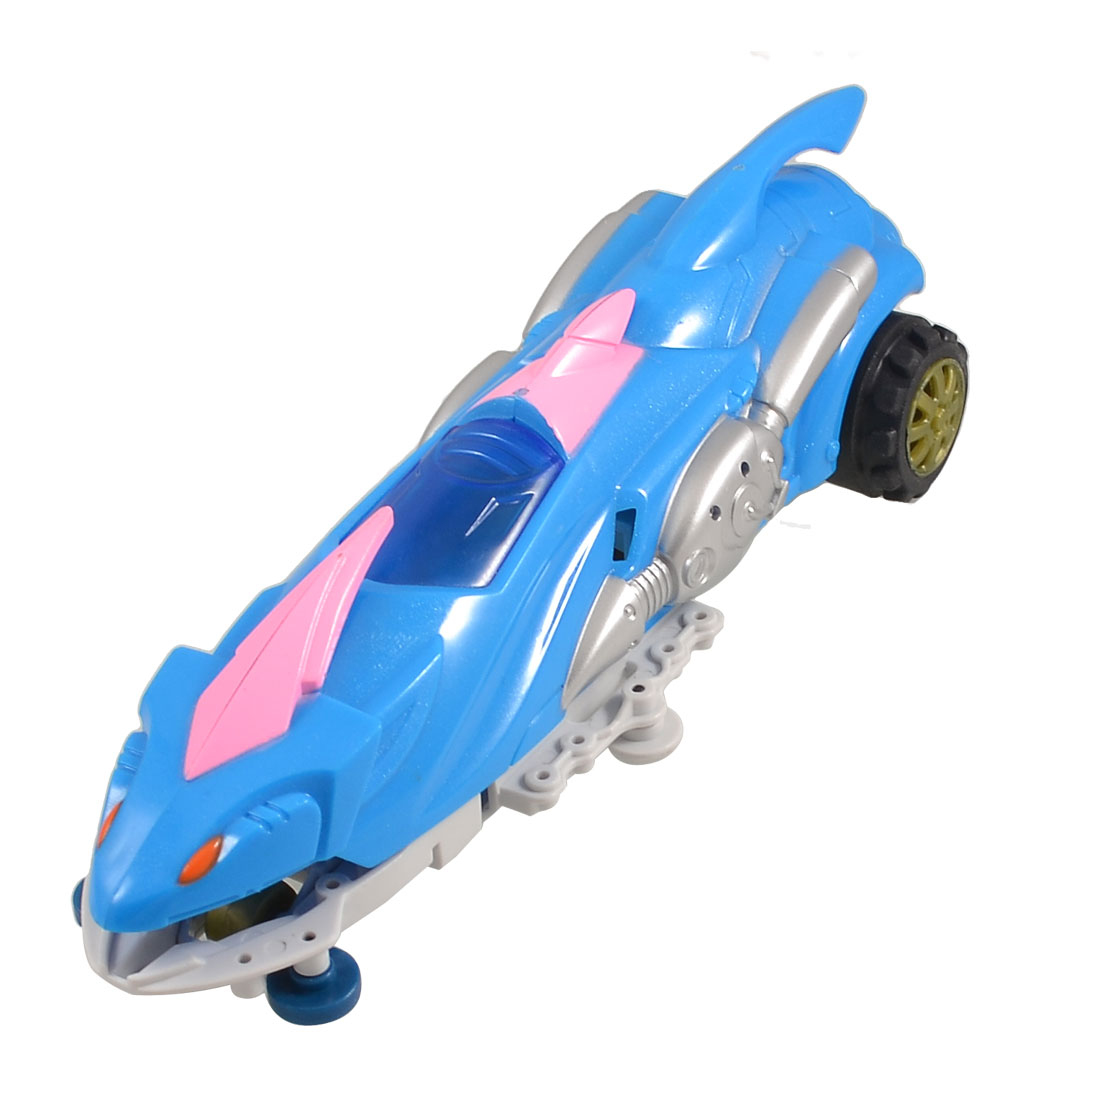 Blue Pink Plastic Racing Car Model Toy for Child Children